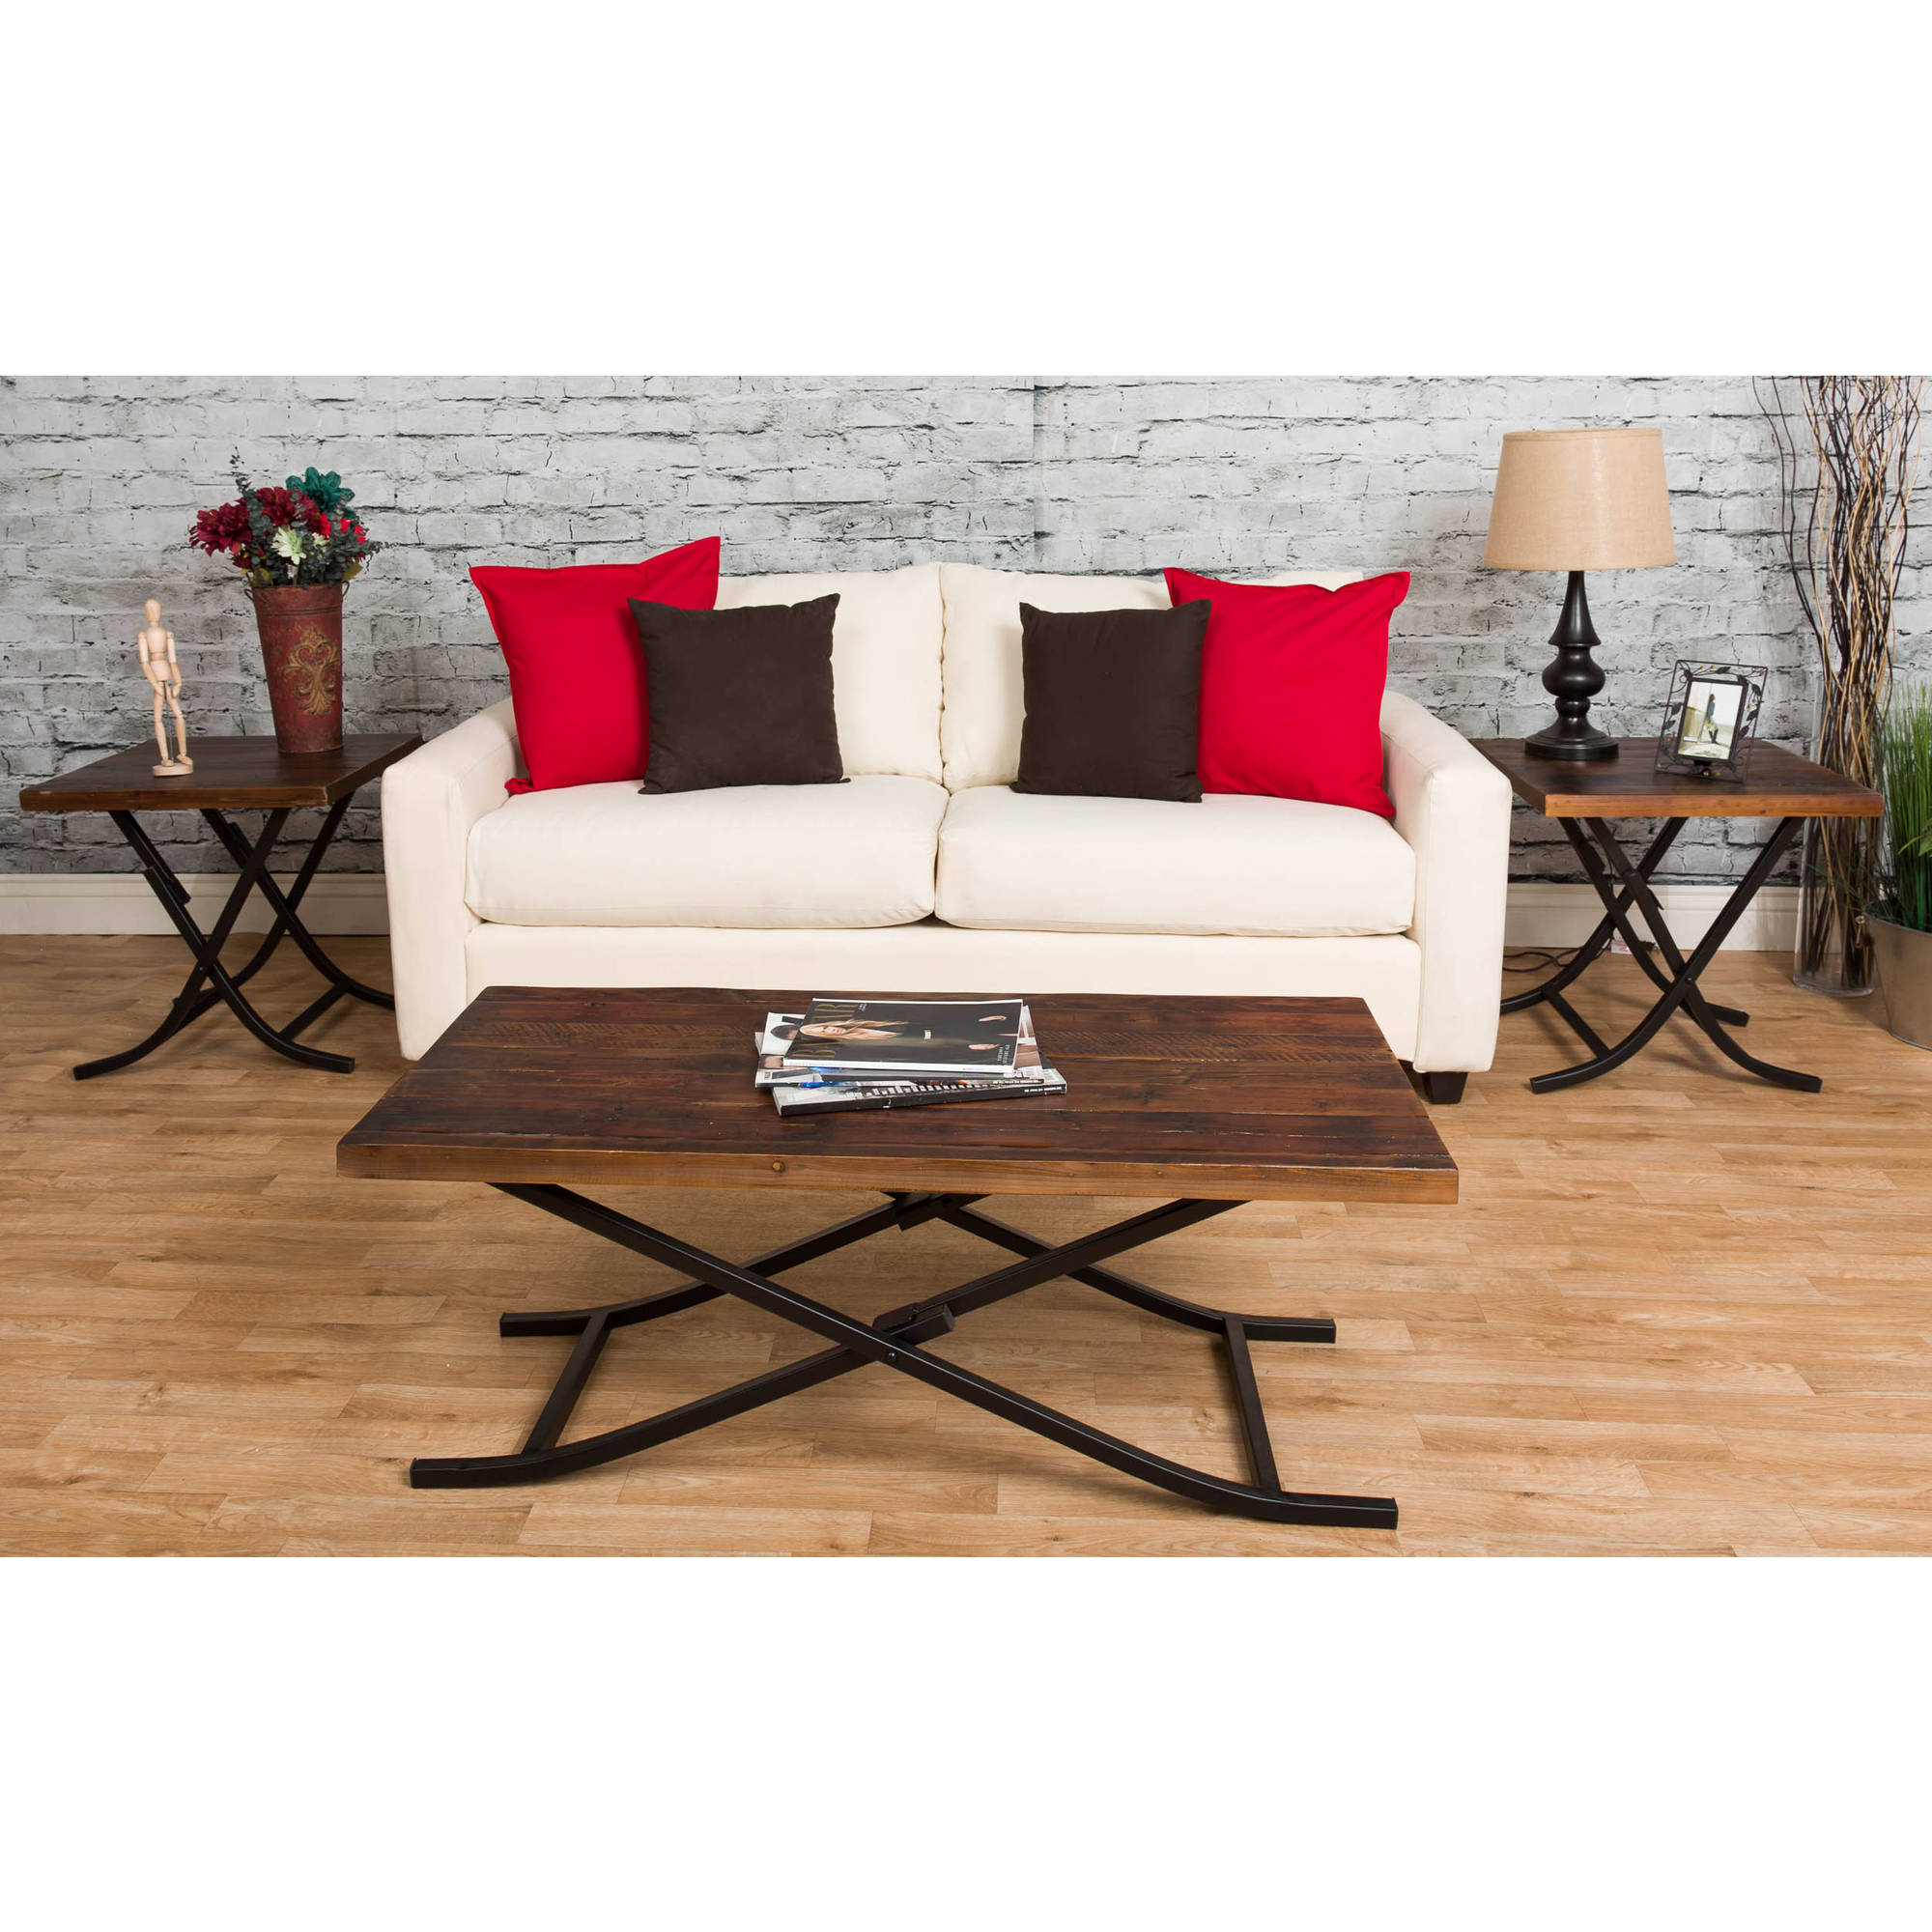 Starfish Furnishing Reclaimed Wood Foldable 3-Piece Occasional Table Set, Natural Finish